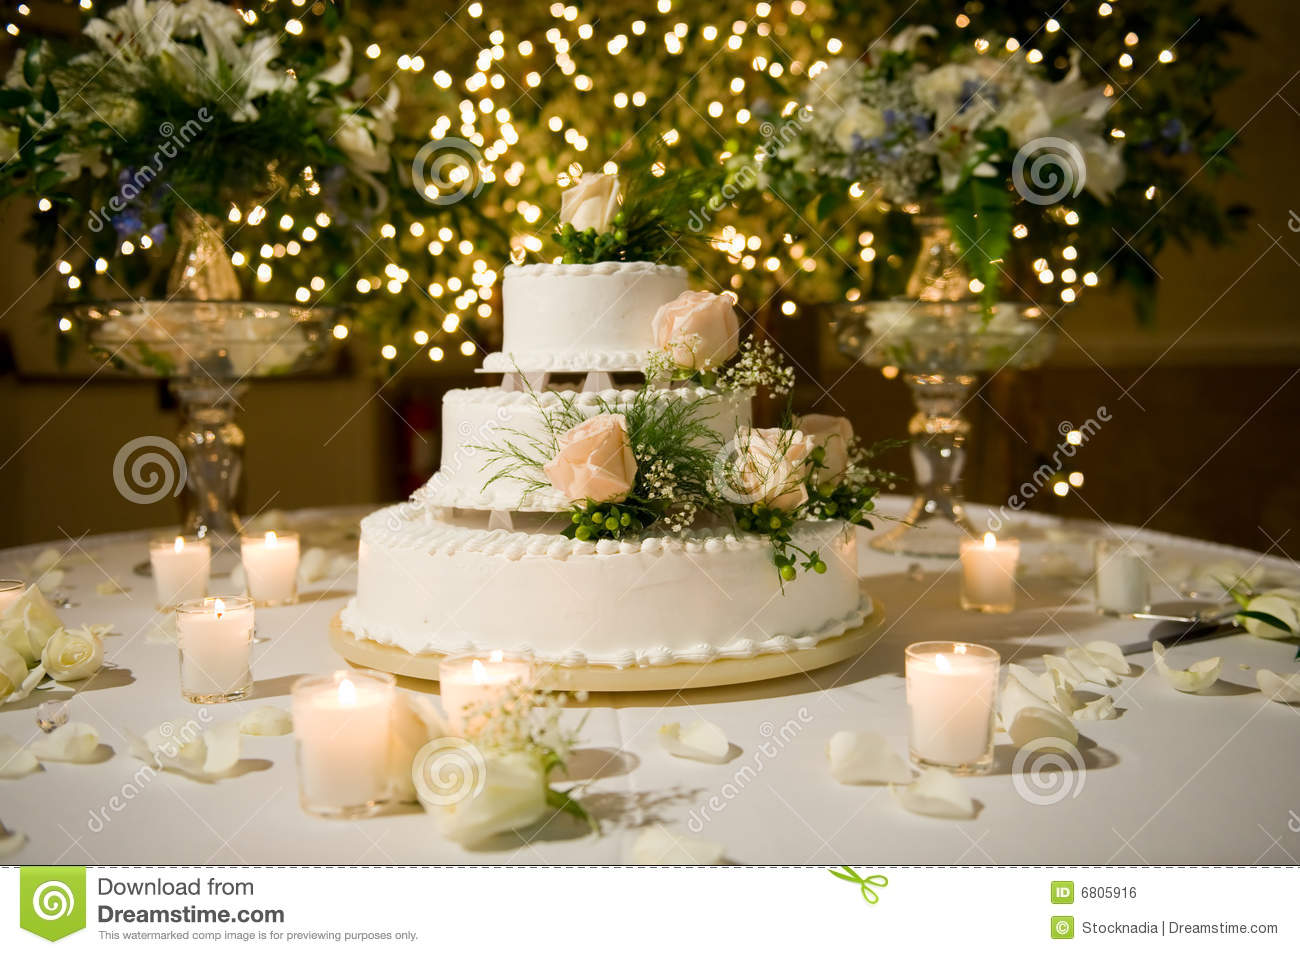 Wedding Cake On The Decorated Table Stock Photo - Image of ...